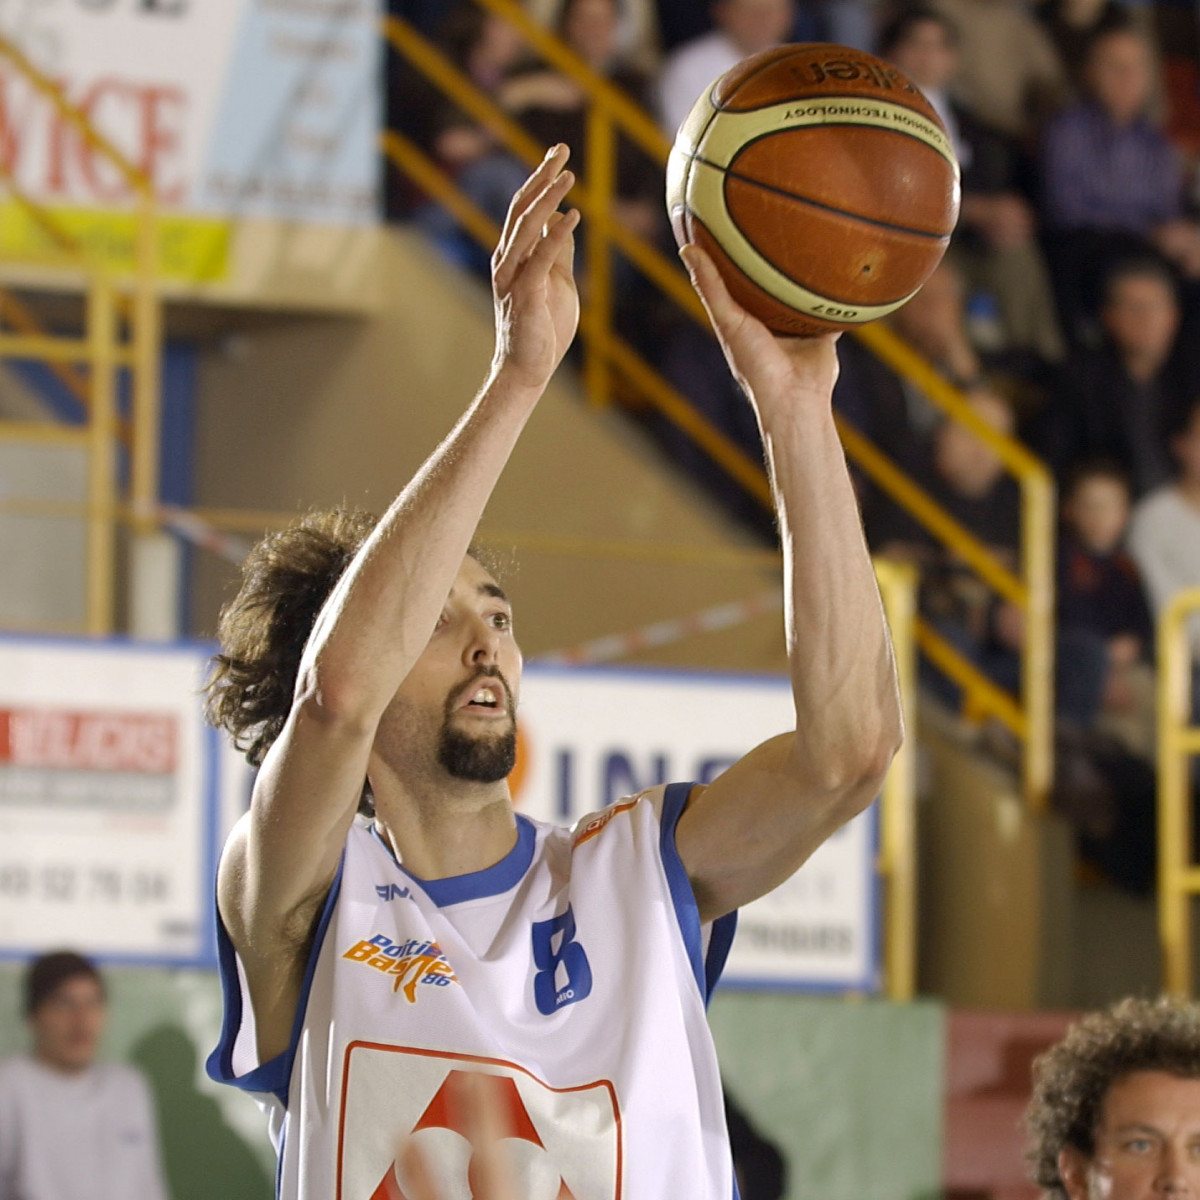 Photo of Sylvain Maynier, 2005-2006 season